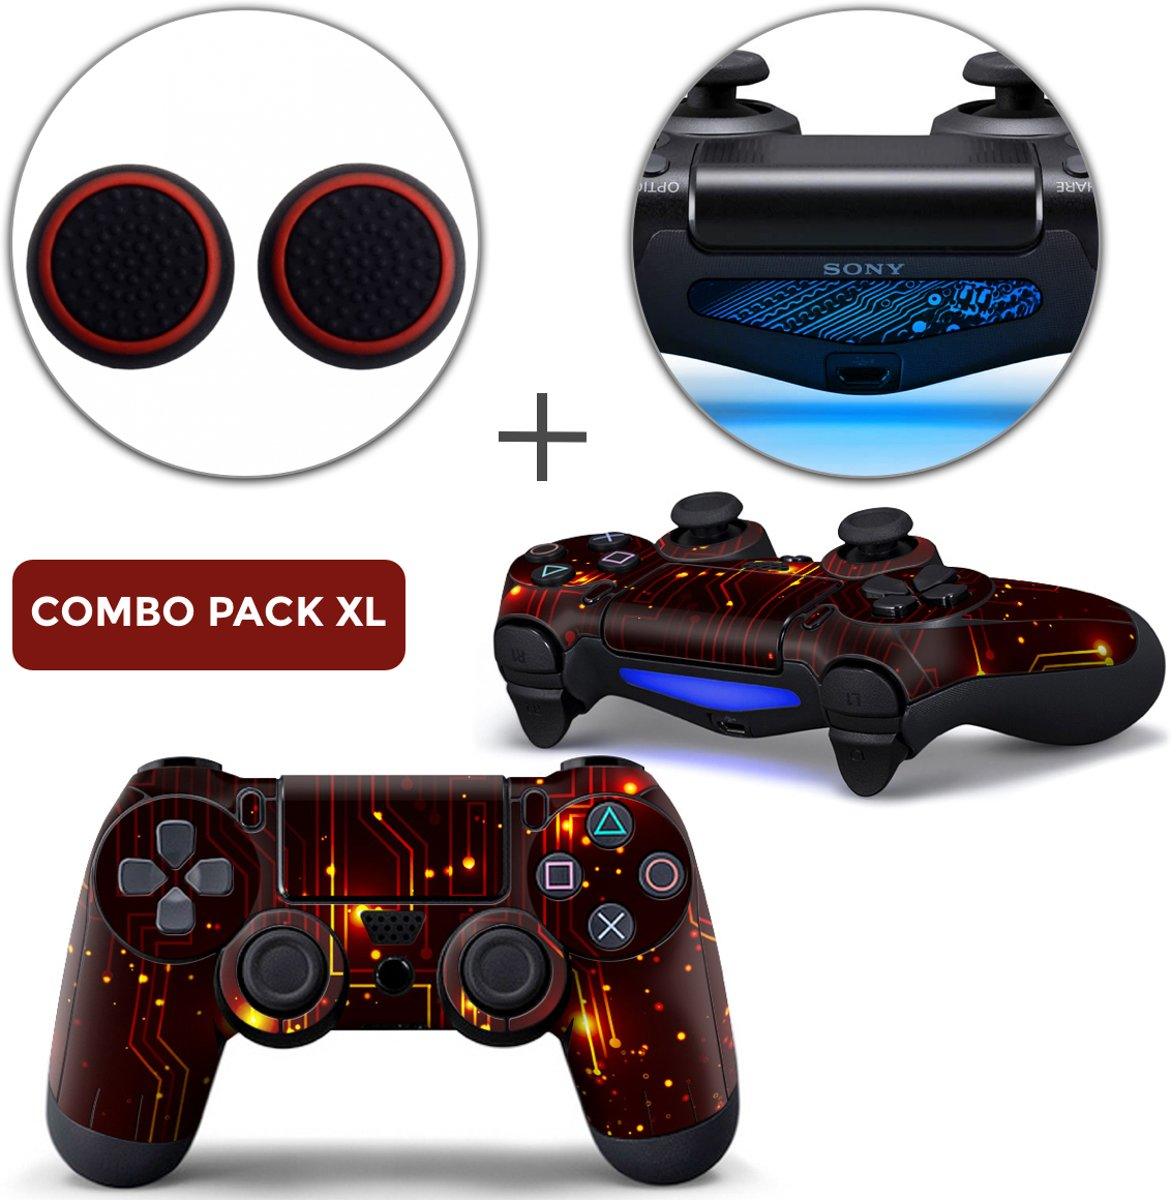 CPU / Rood Combo Pack XL - PS4 Controller Skins PlayStation Stickers + Thumb Grips + Lightbar Skin Sticker